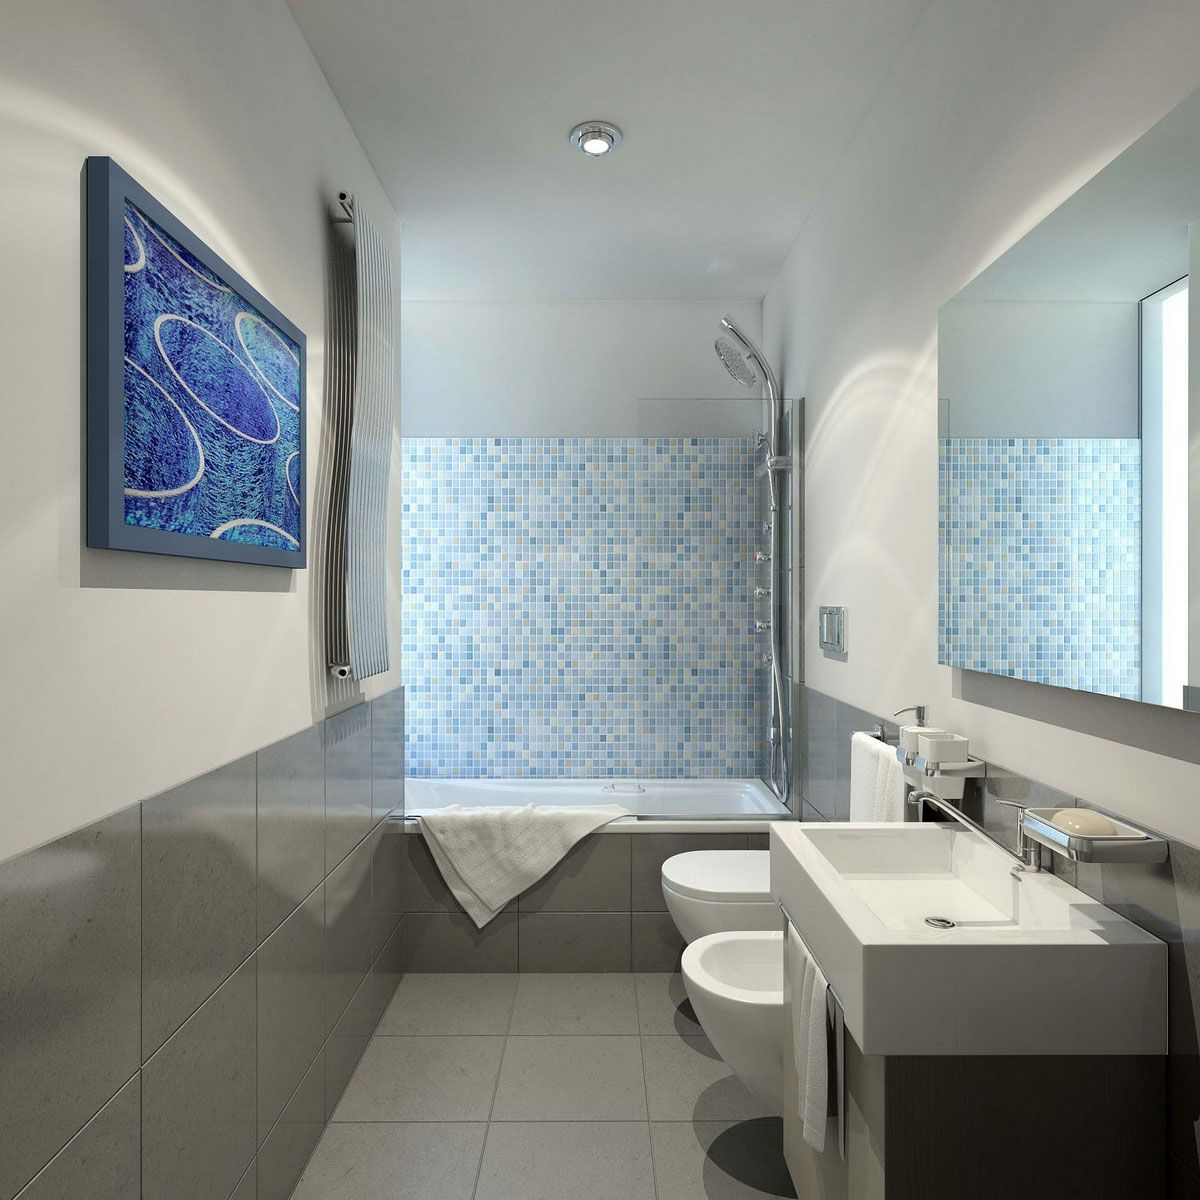 looks like there is a window or skylight on the other side of the shower modern narrow bathroom design ideas with attractive ocean blue mosaic tiles and - Design Bathroom Ideas